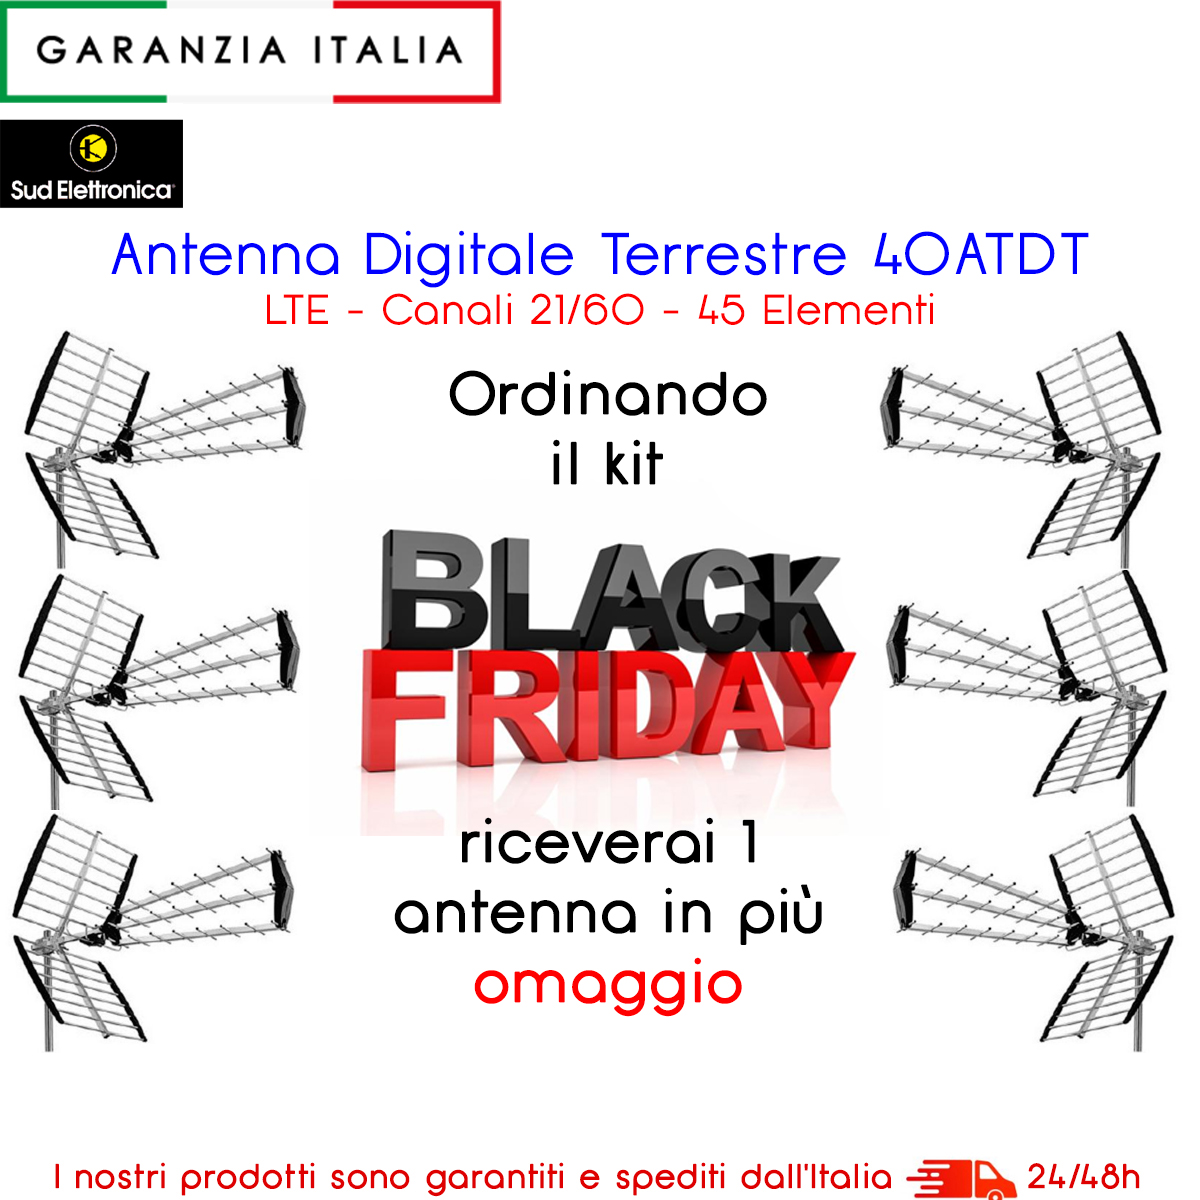 Promo Black Friday 5 pz Antenna digitale terrestre 45 elementi UHF 1 omaggio